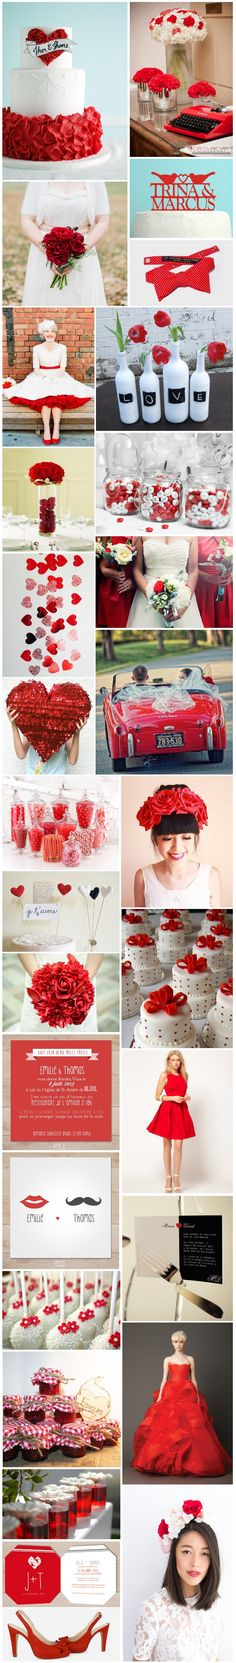 [Inspiration] Mariage rouge                                                                                                                                                      Plus